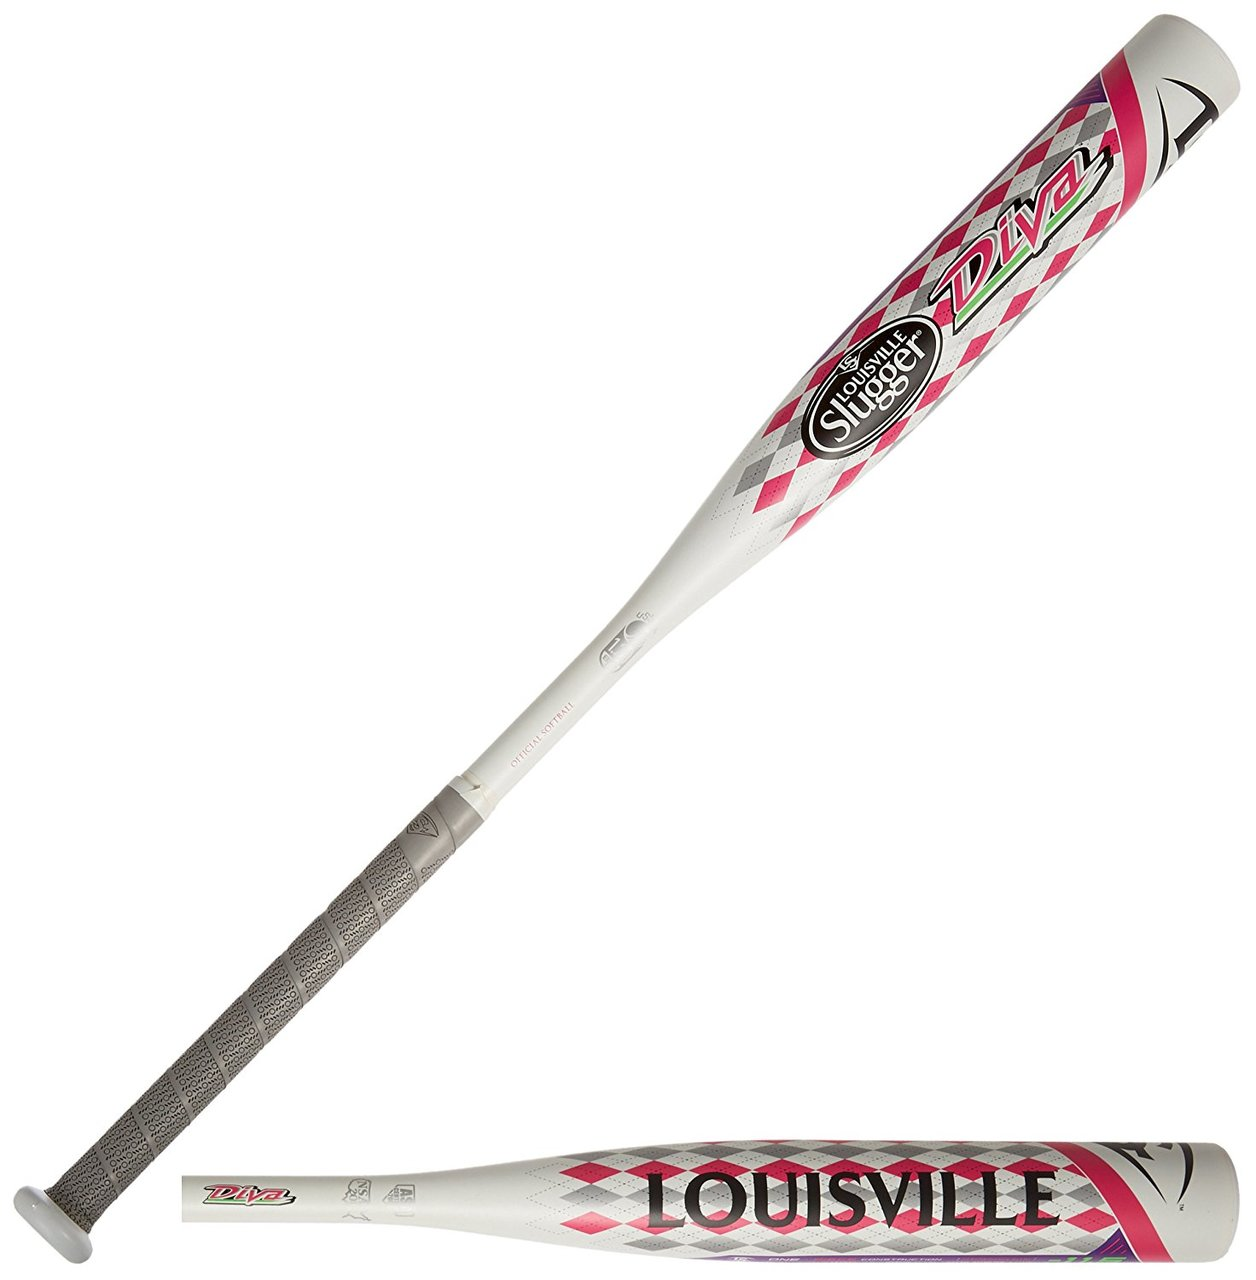 louisville-slugger-fpdv151-2015-diva-11-5-fast-pitch-baseball-bat-29-inch-17-5-oz WTLFPDV151-29 Louisville  The Divas alloy construction and 2 1/4 barrel give it a